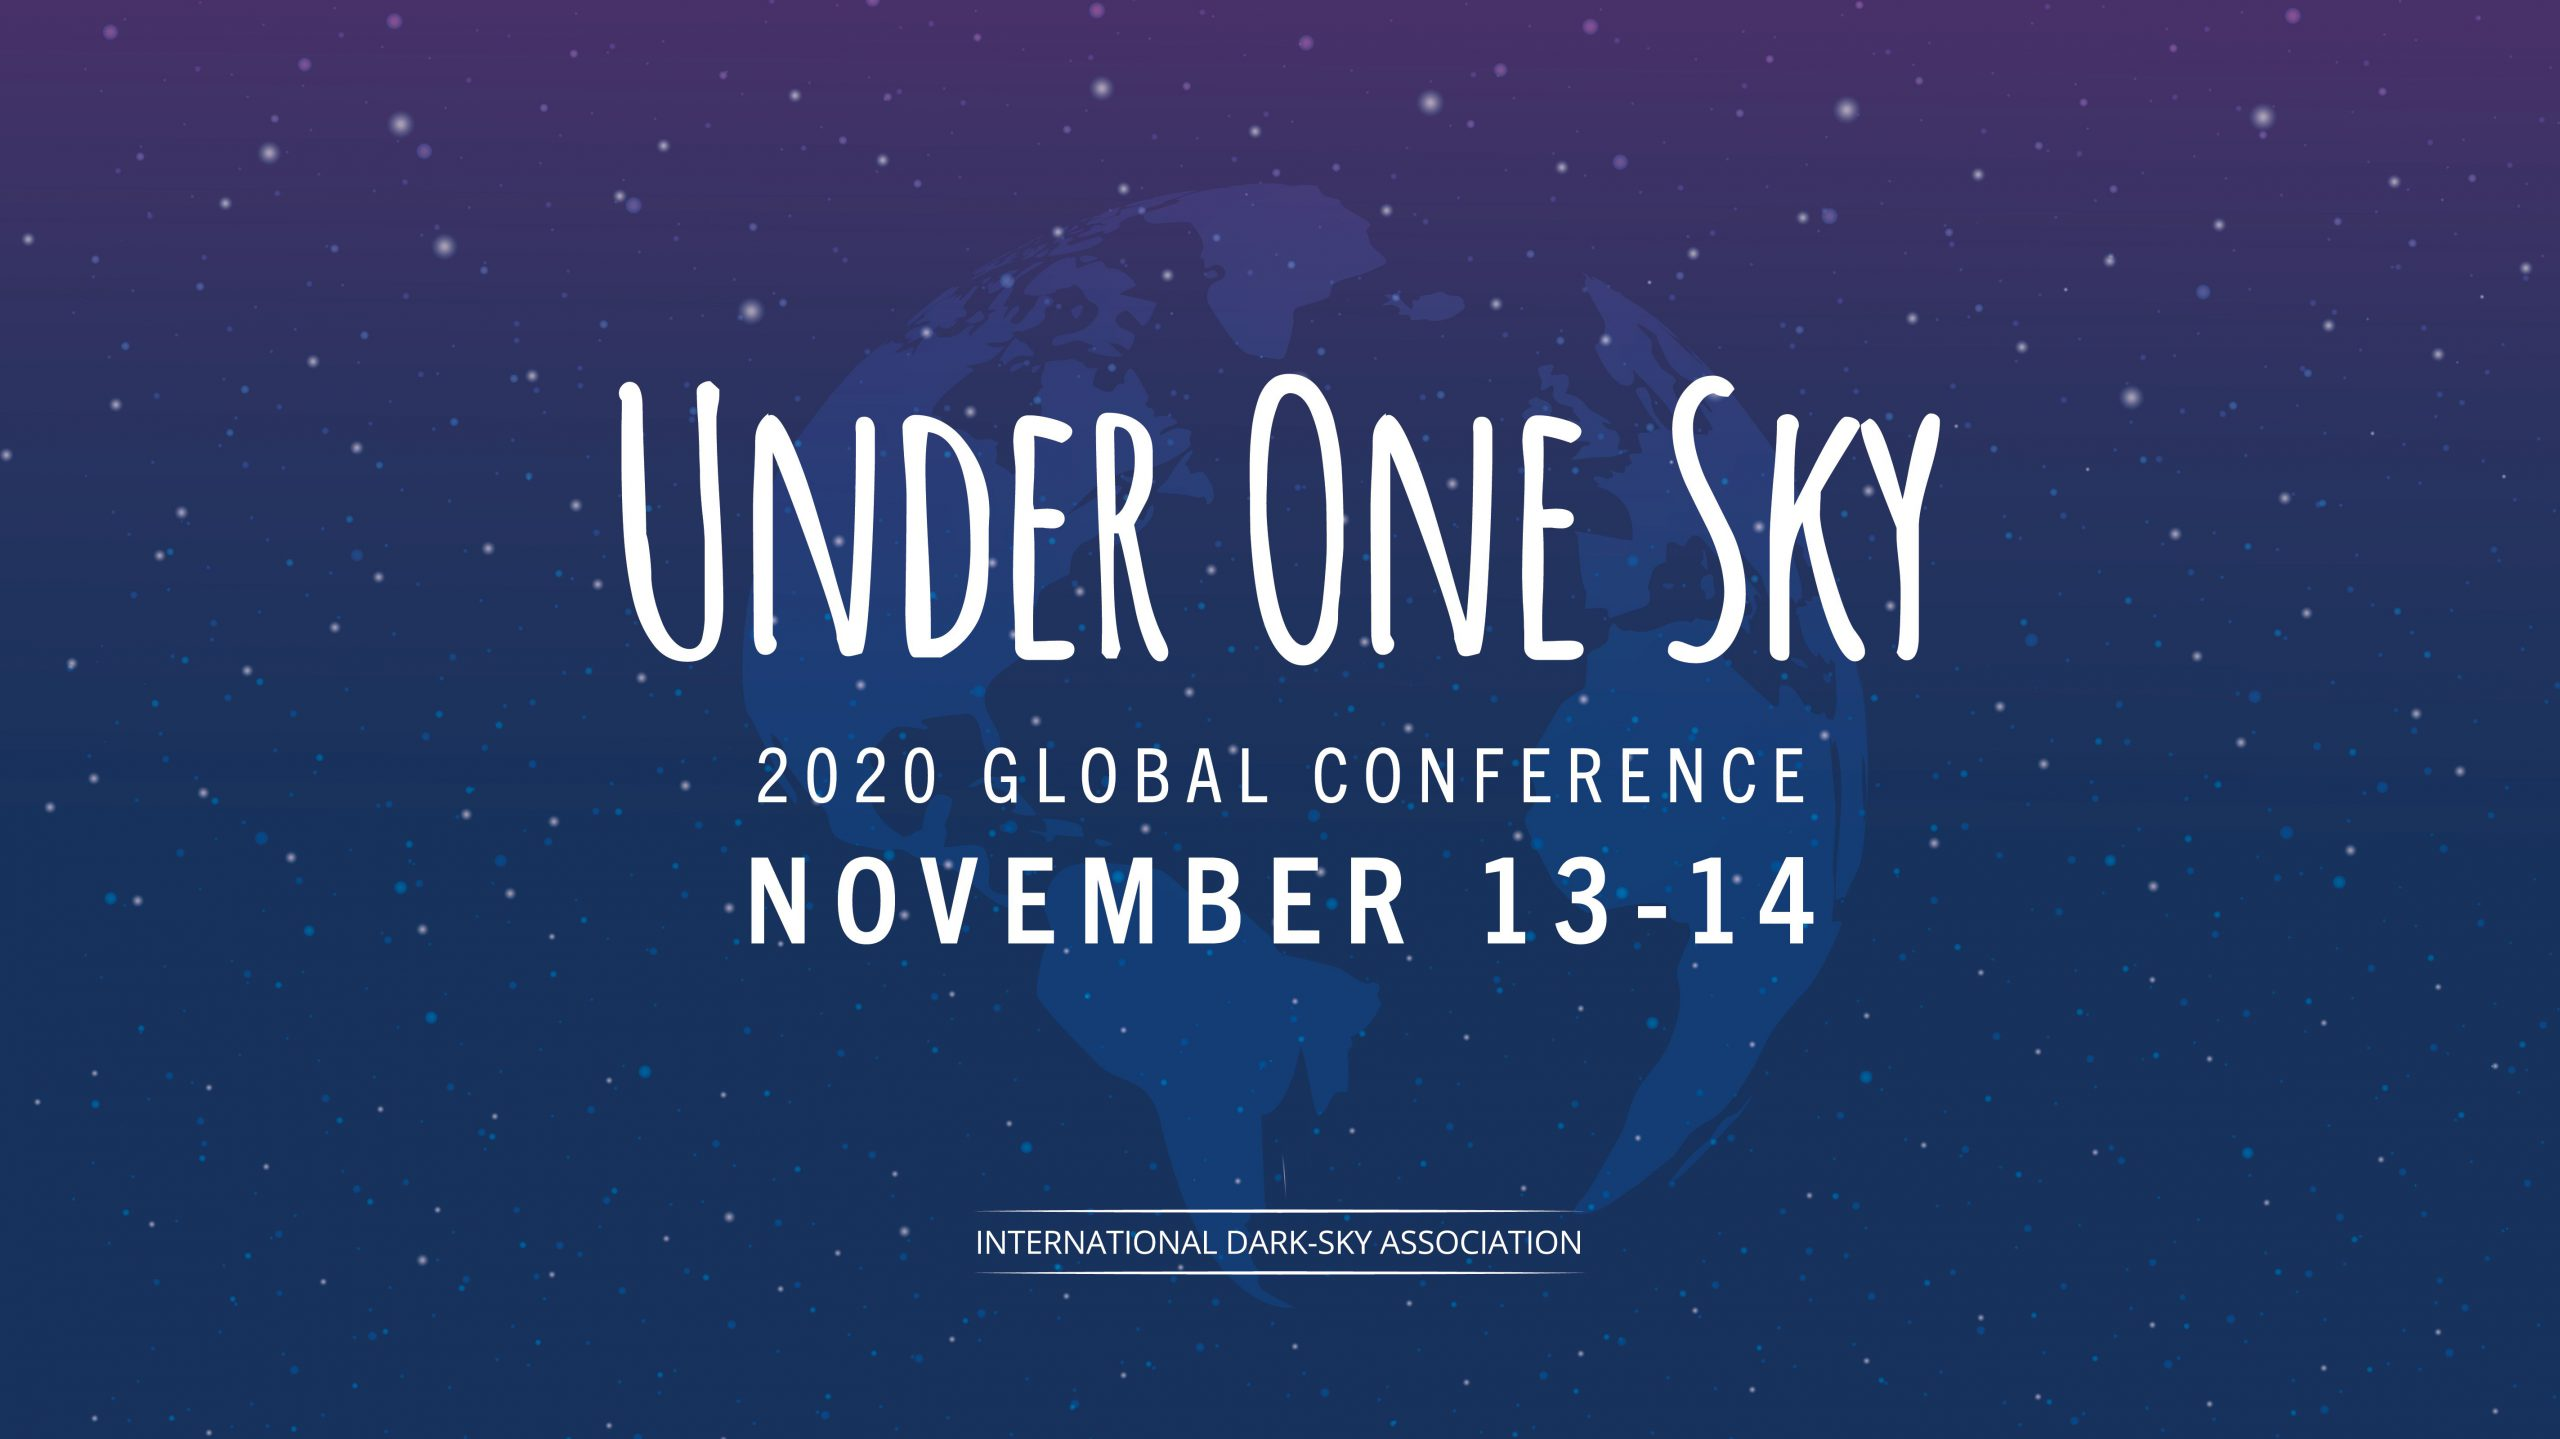 Under One Sky 2020 Highlights